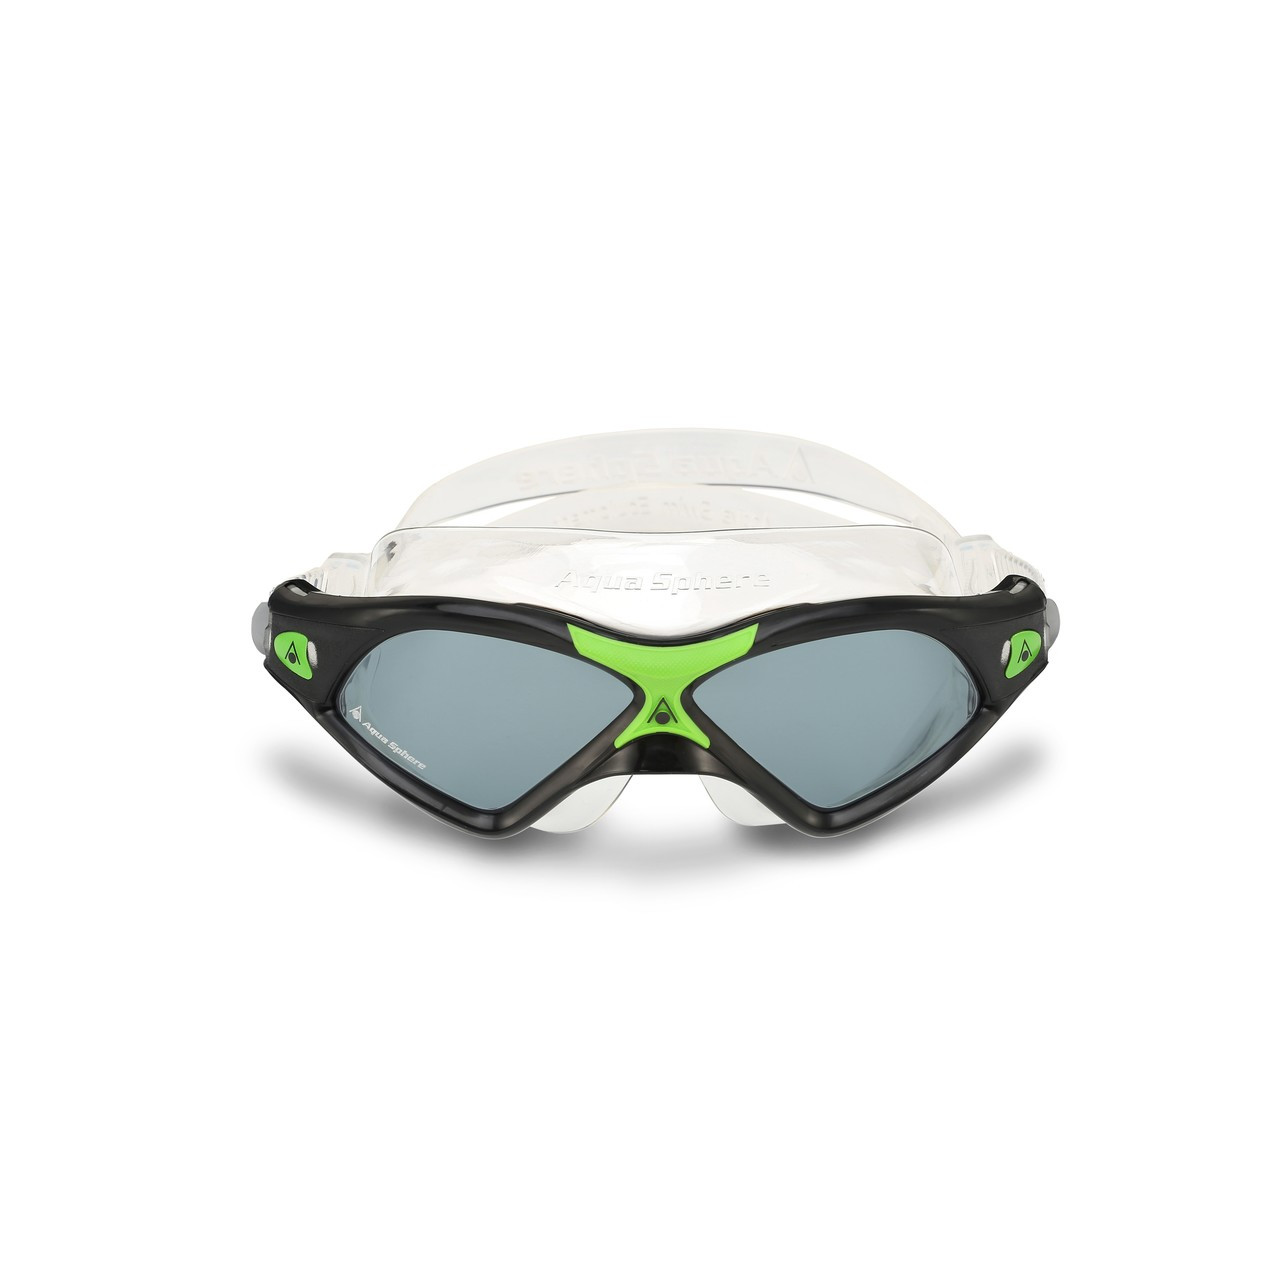 Aqua Sphere Seal XP 2 Swim Mask with Tinted Lens - 2019 price